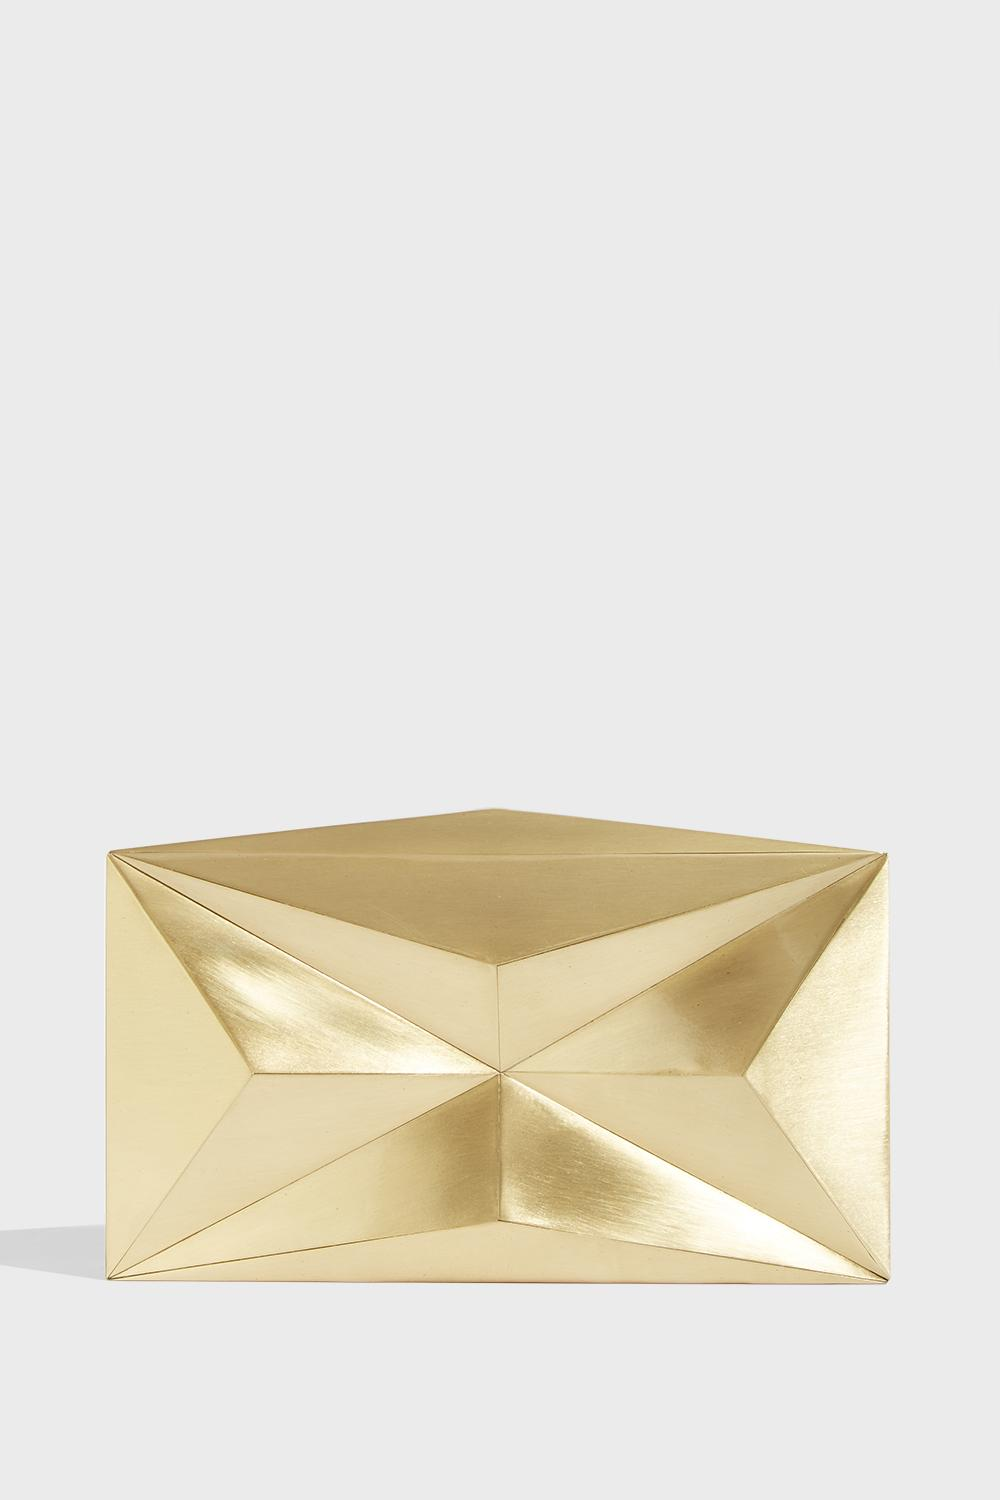 KDP Sculpture Metal Clutch, Size Os, Women, Y Gold